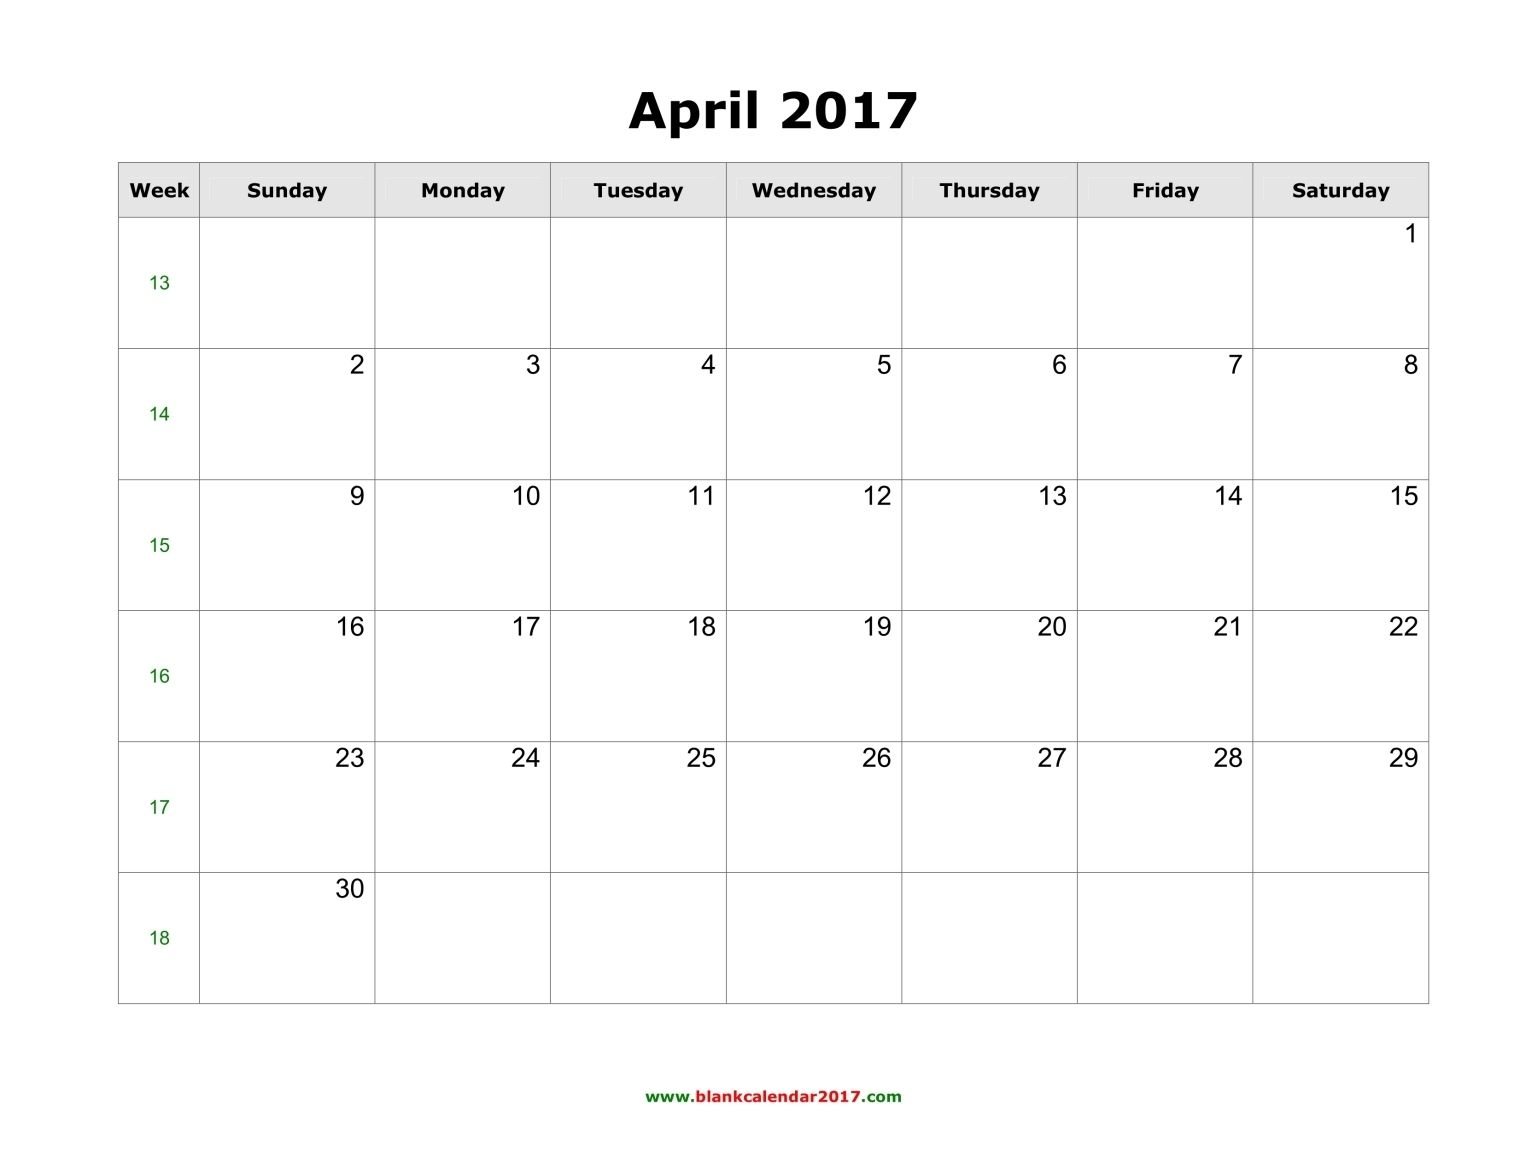 April 2017 Calendar With Holidays Uk Motivasi